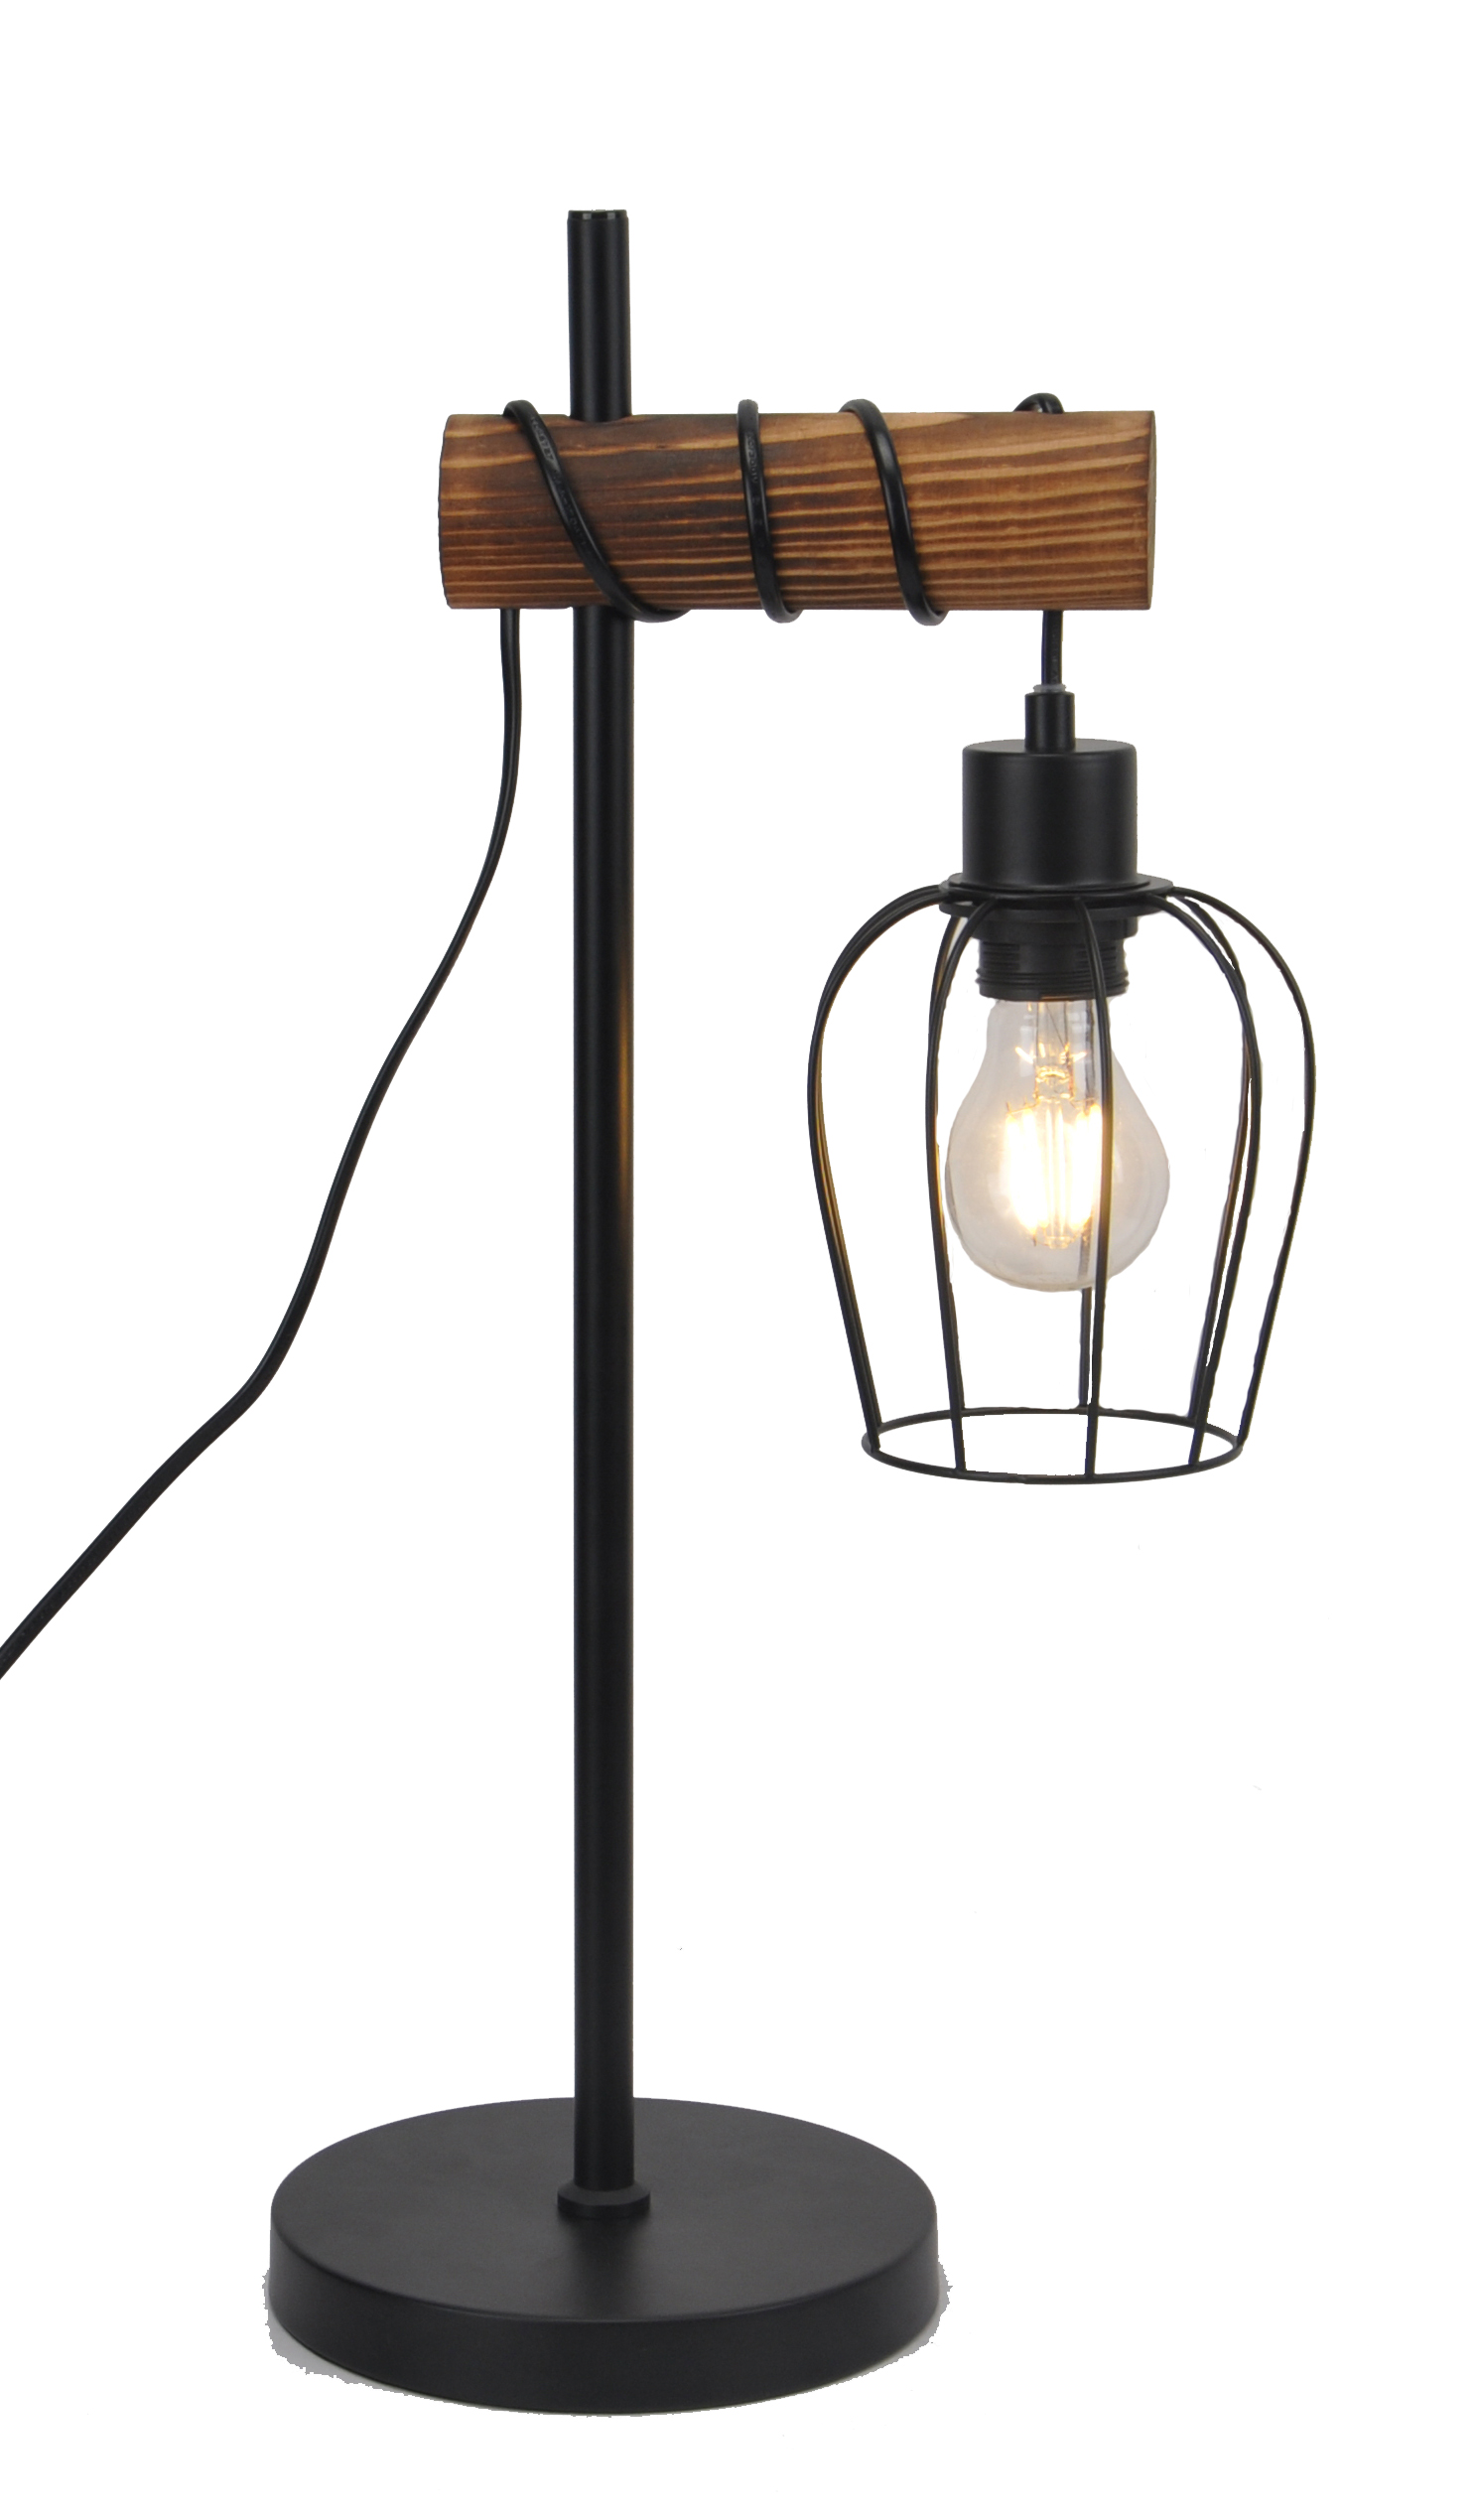 Table lamp with smoked wood